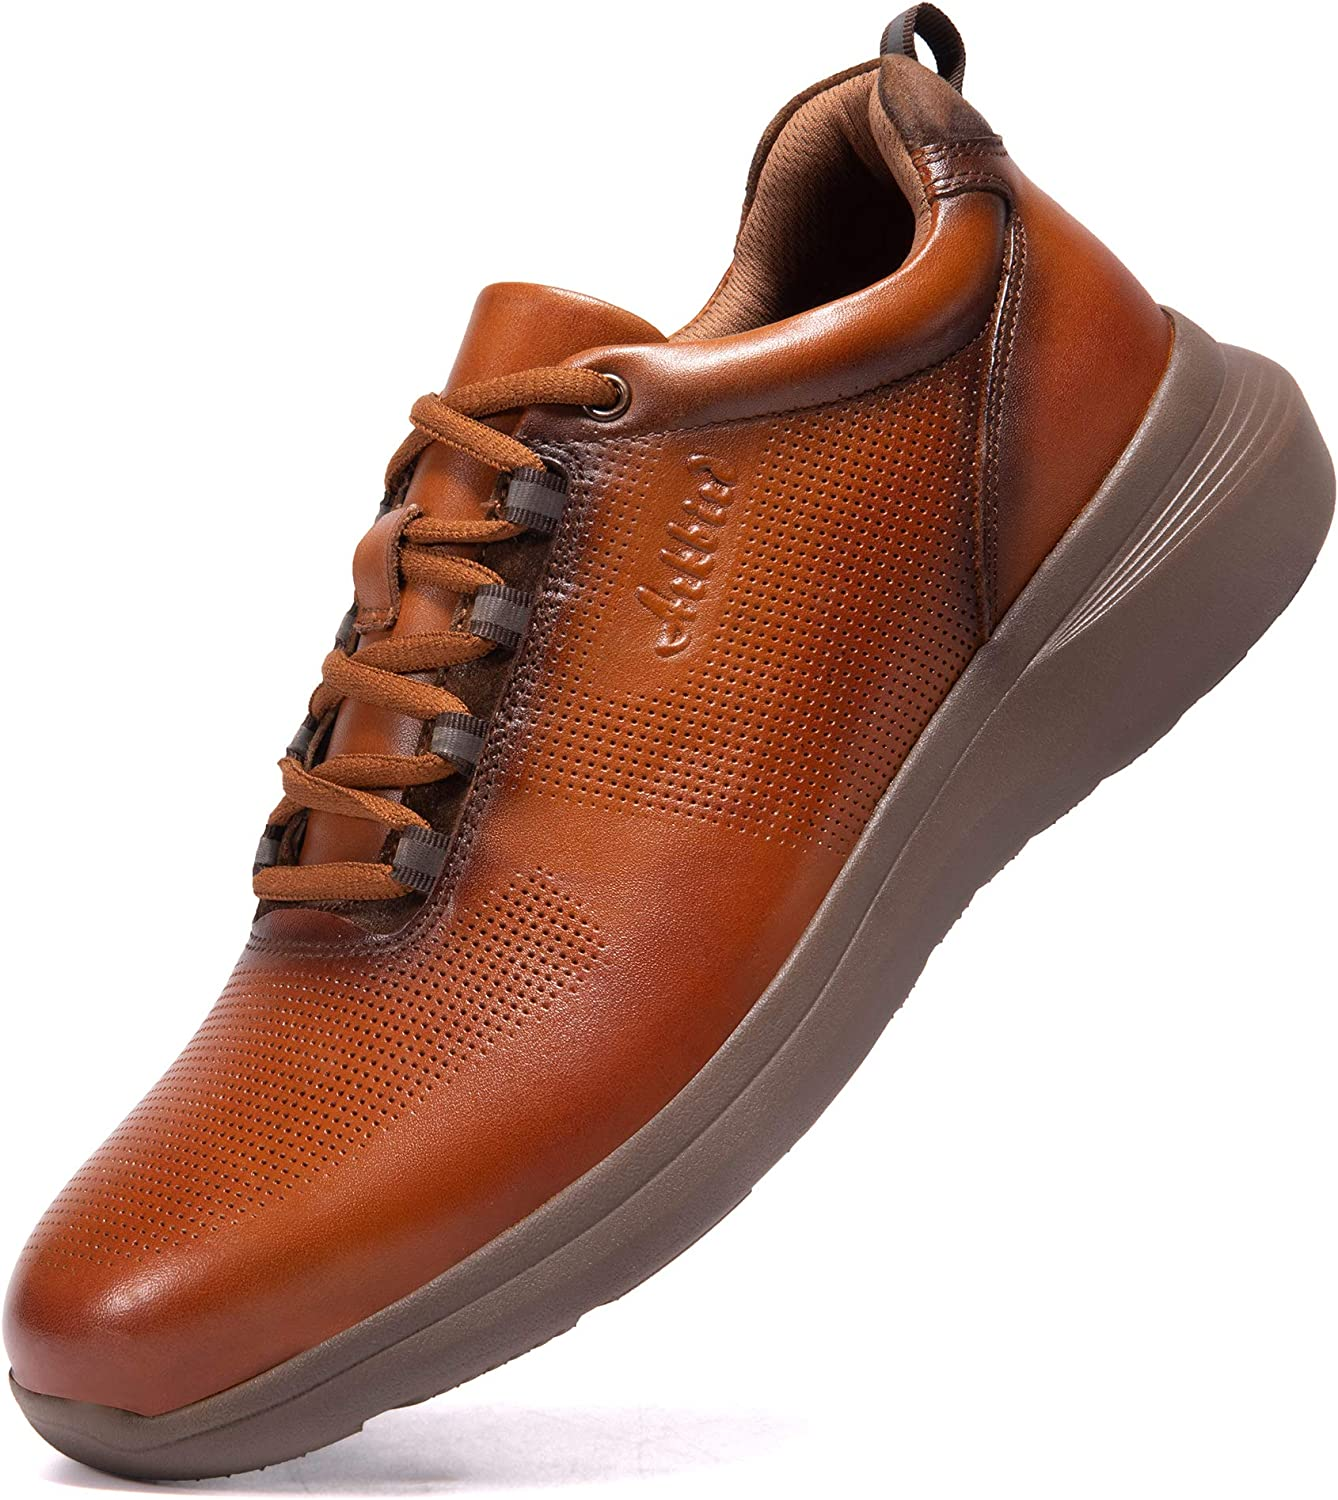 Arkbird Discount is also Indianapolis Mall underway Mens Fashion Sneaker Shoes Oxford Casual Leather Genuine